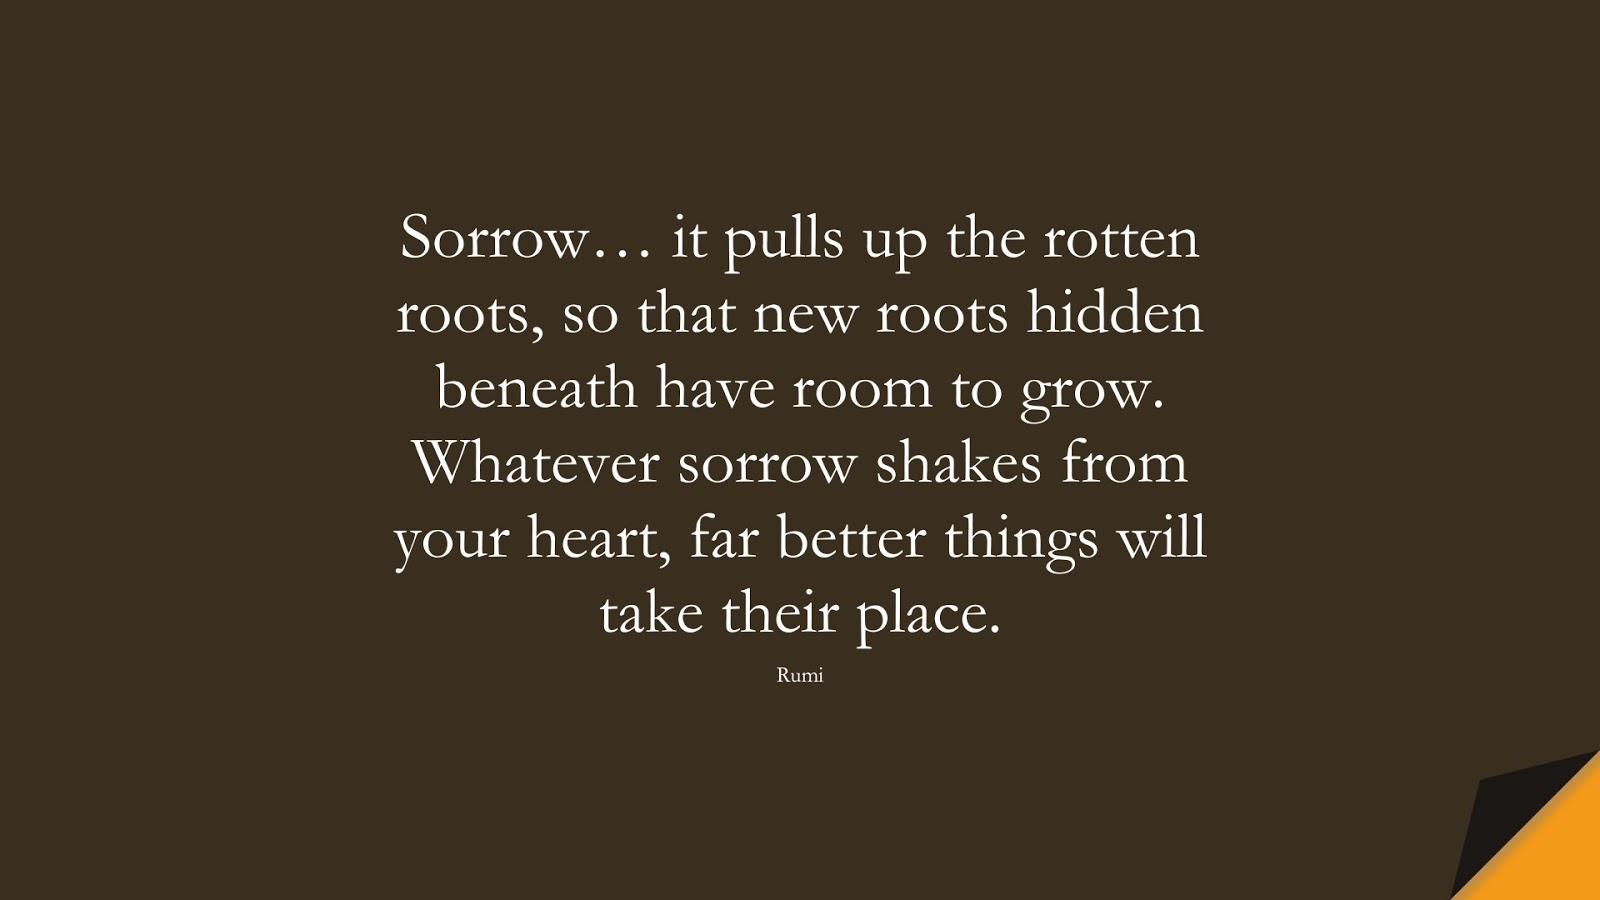 Sorrow… it pulls up the rotten roots, so that new roots hidden beneath have room to grow. Whatever sorrow shakes from your heart, far better things will take their place. (Rumi);  #RumiQuotes